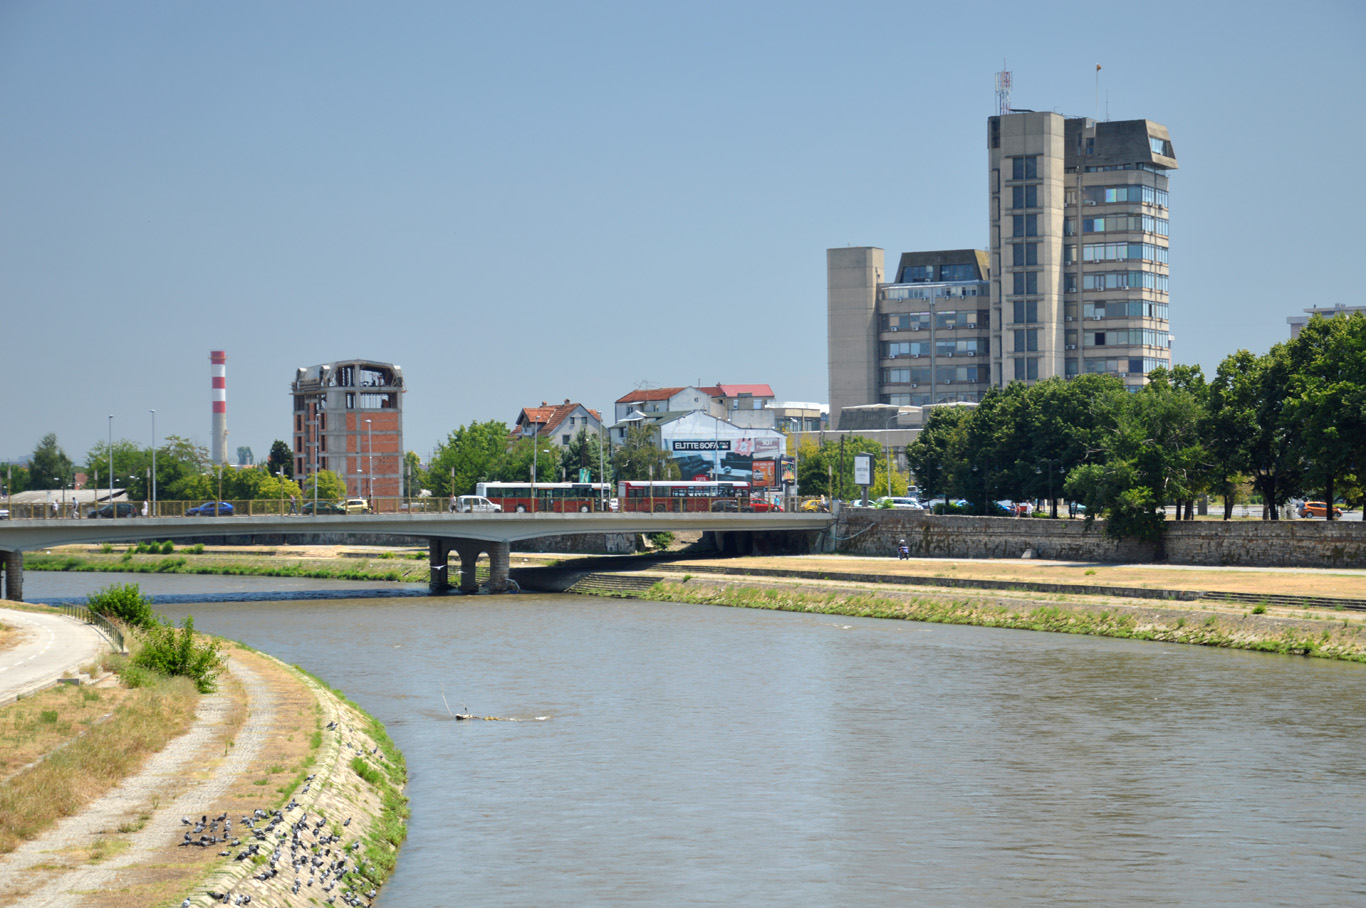 The other, old side of the river